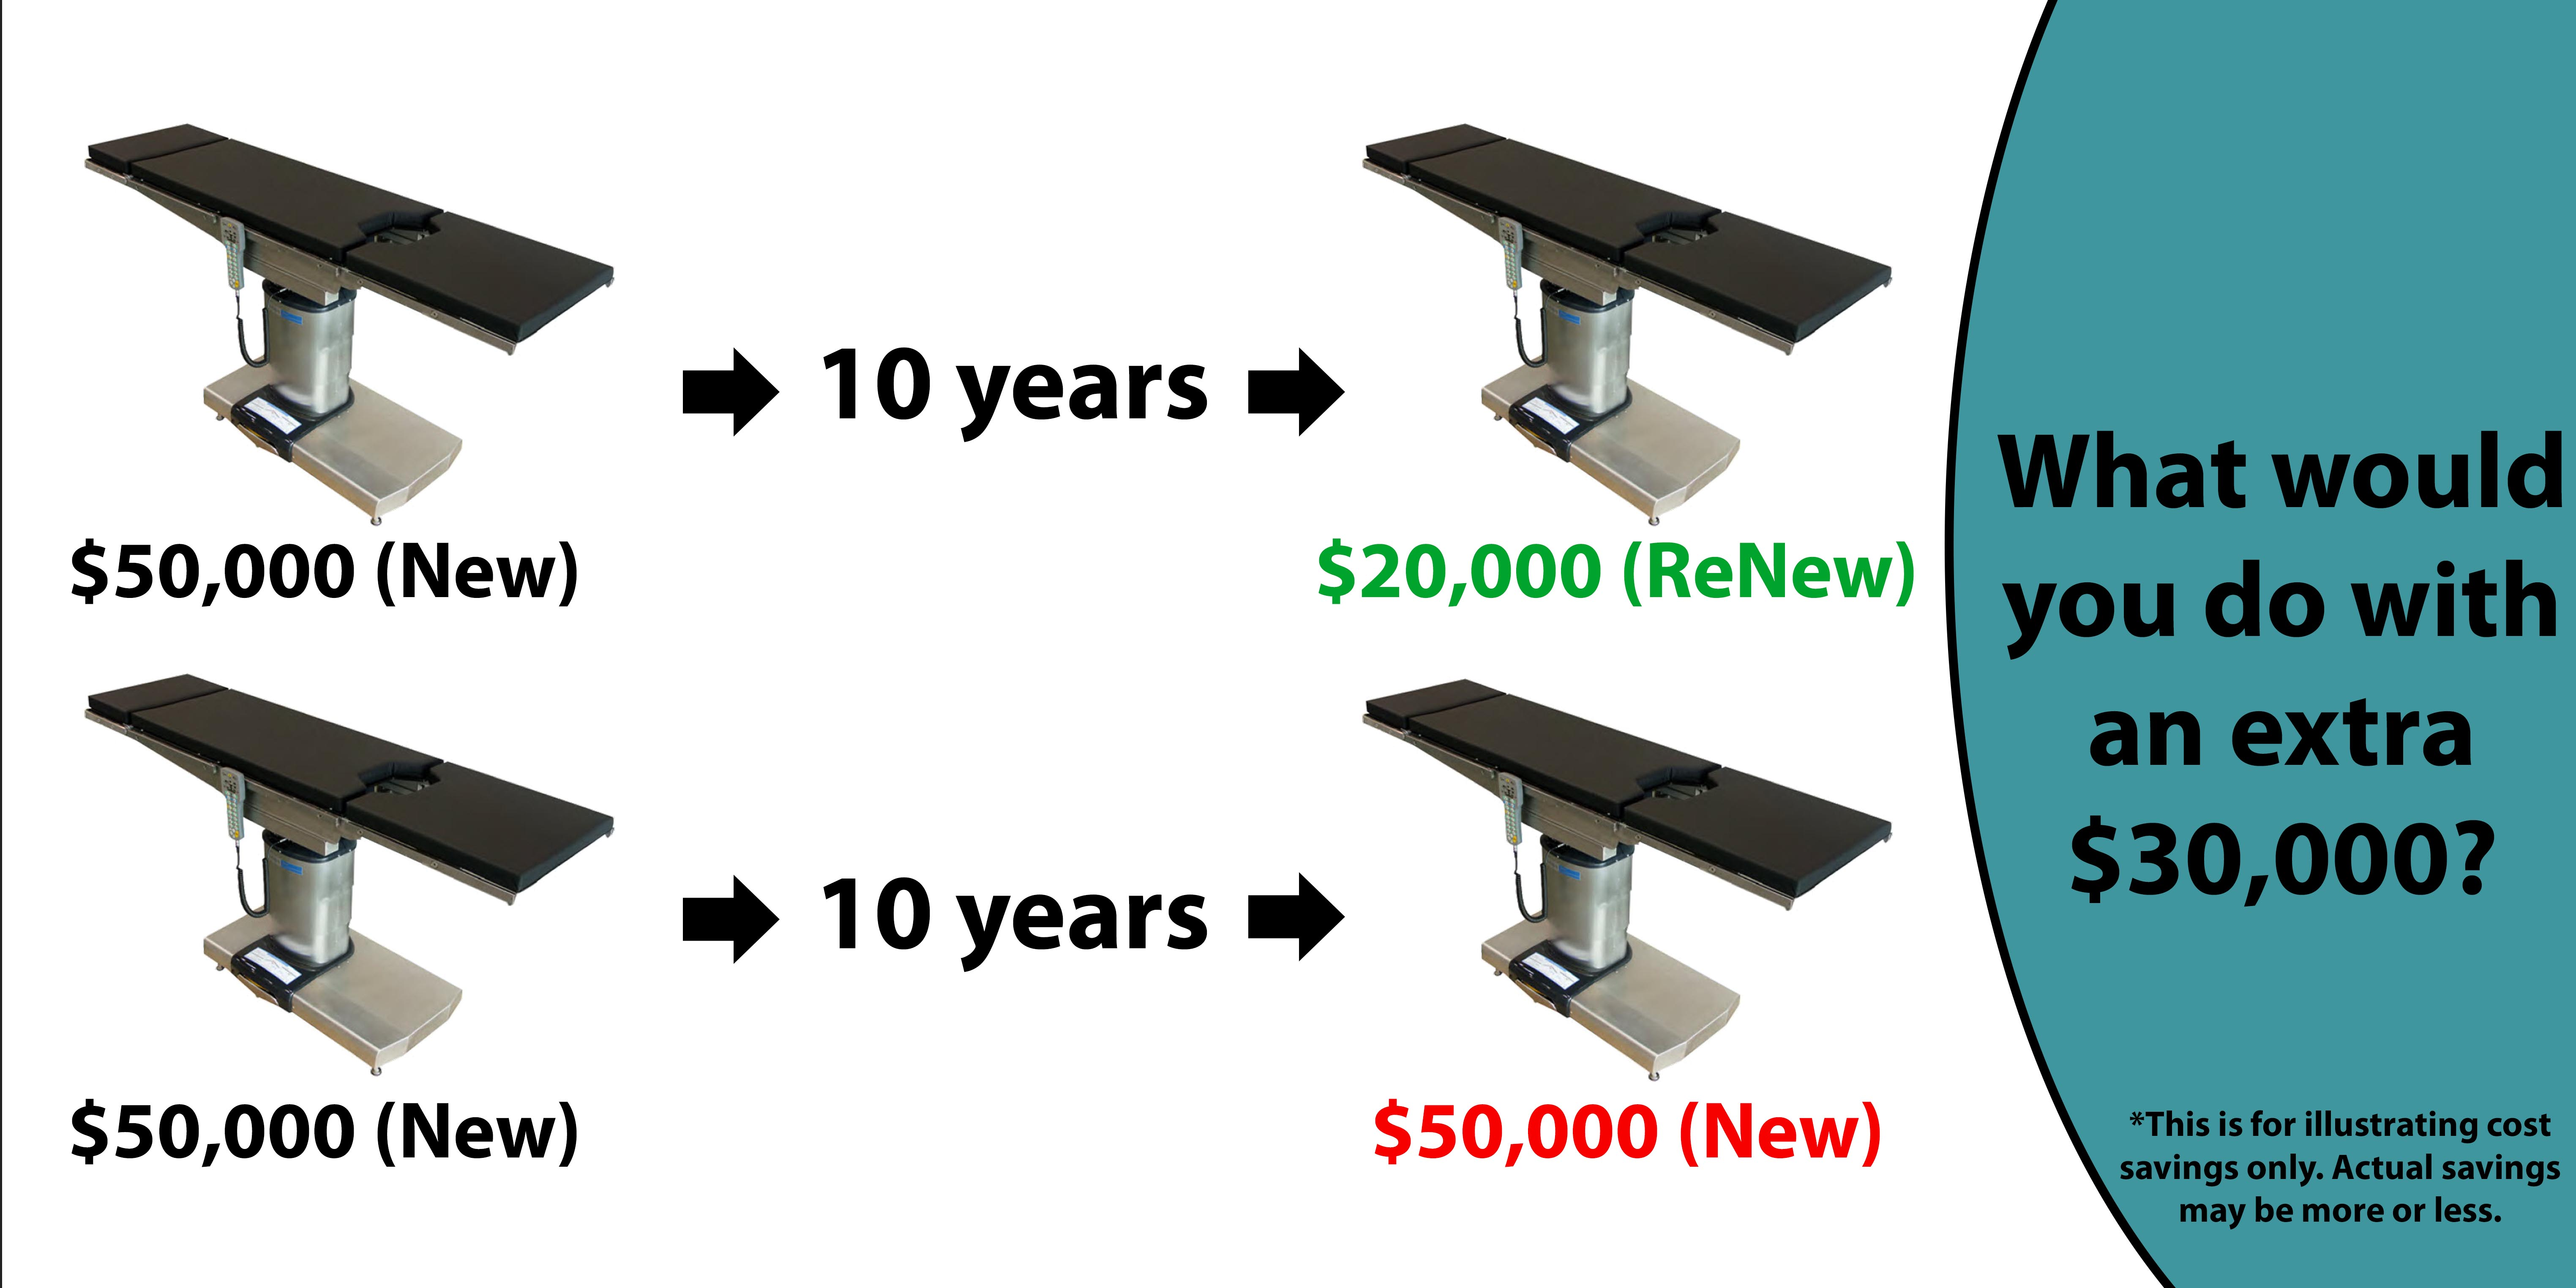 Remanufactured Surgical Table Savings